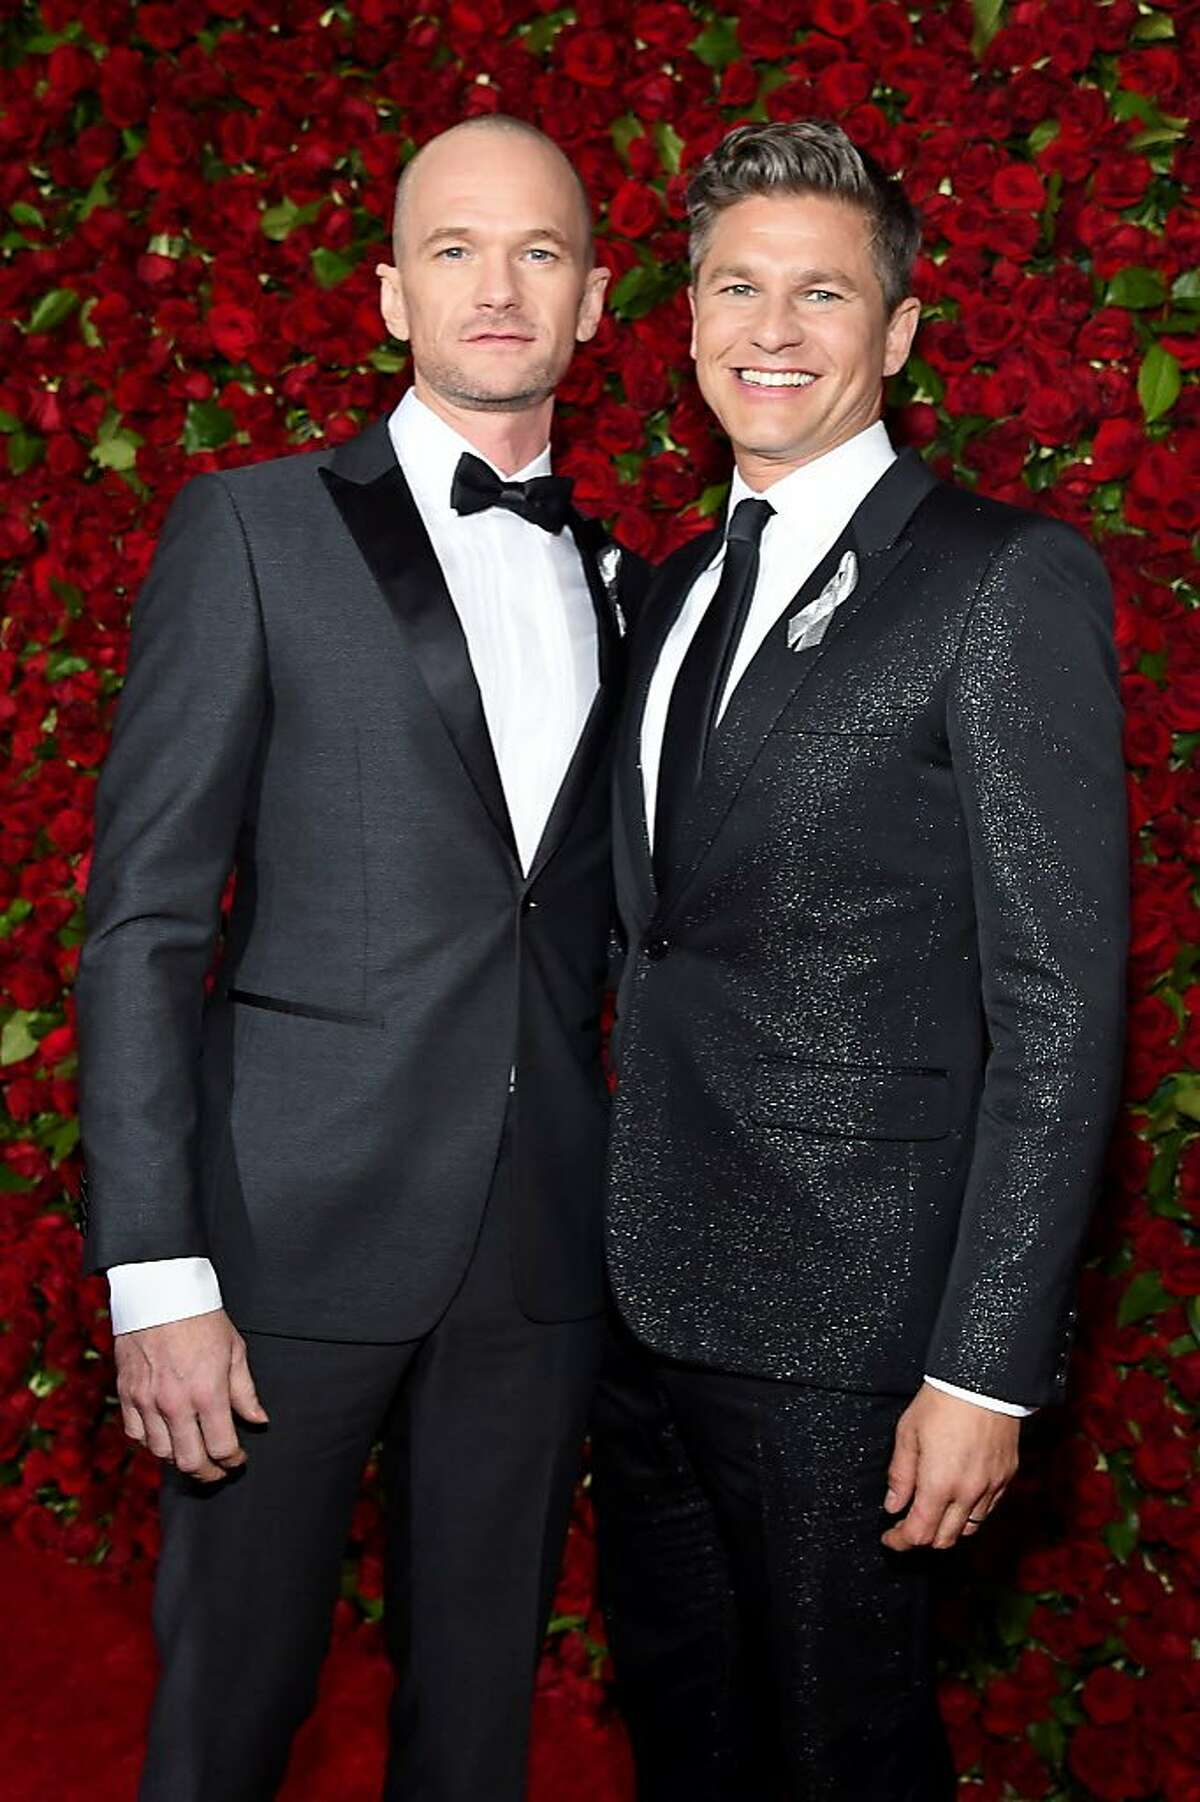 Neil Patrick Harris and David Burtka attends the 70th Annual Tony Awards at The Beacon Theatre on June 12, 2016 in New York City.